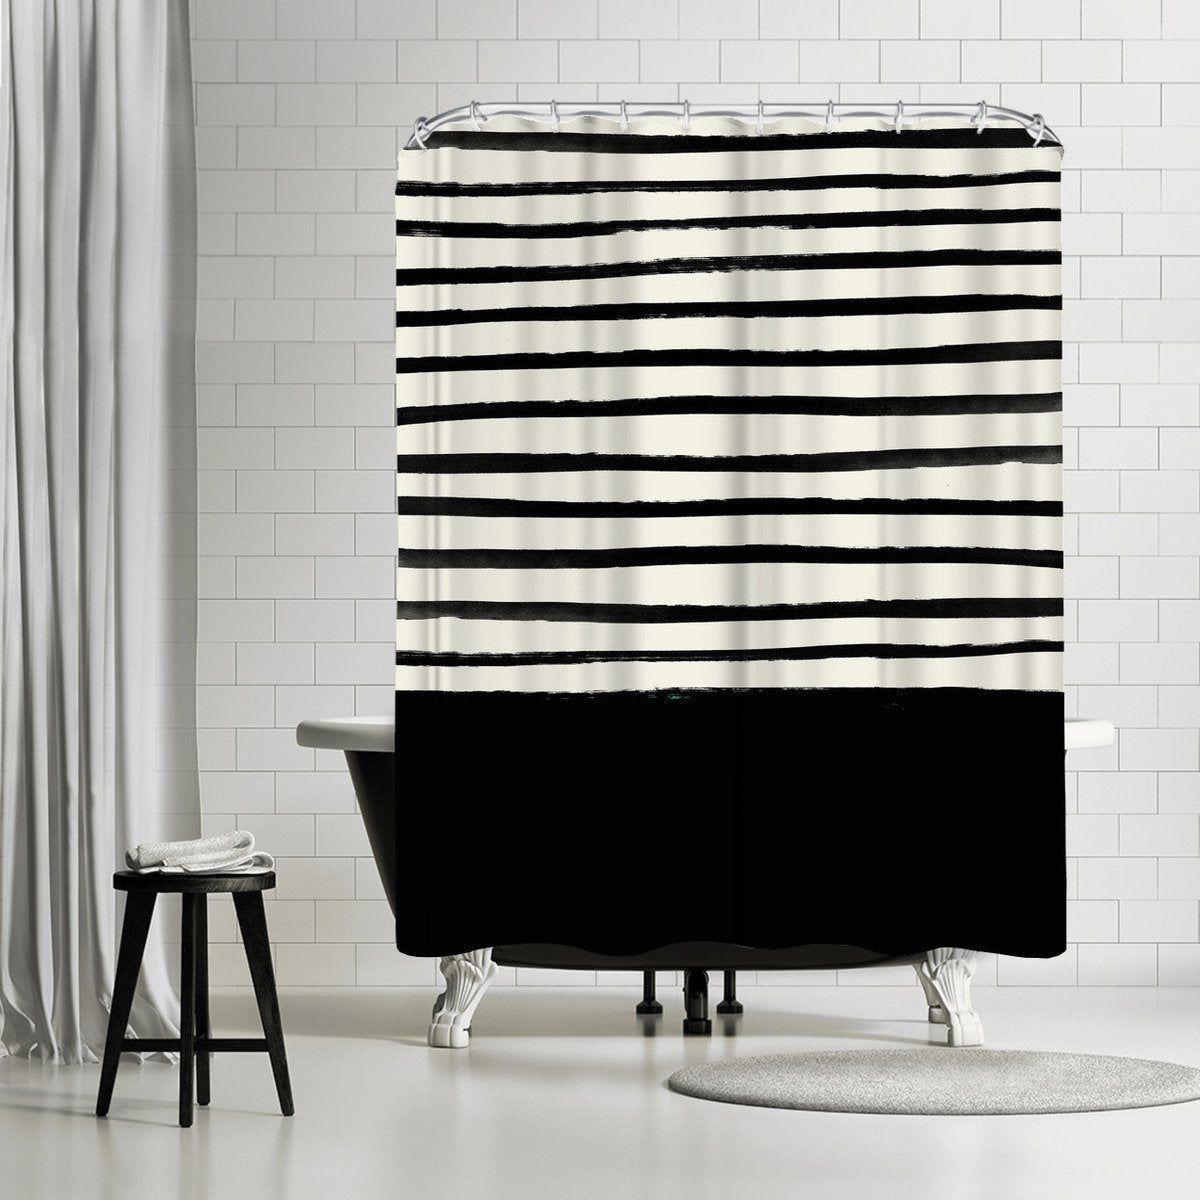 Black by Leah Flores Shower Curtain - Shower Curtain - Americanflat